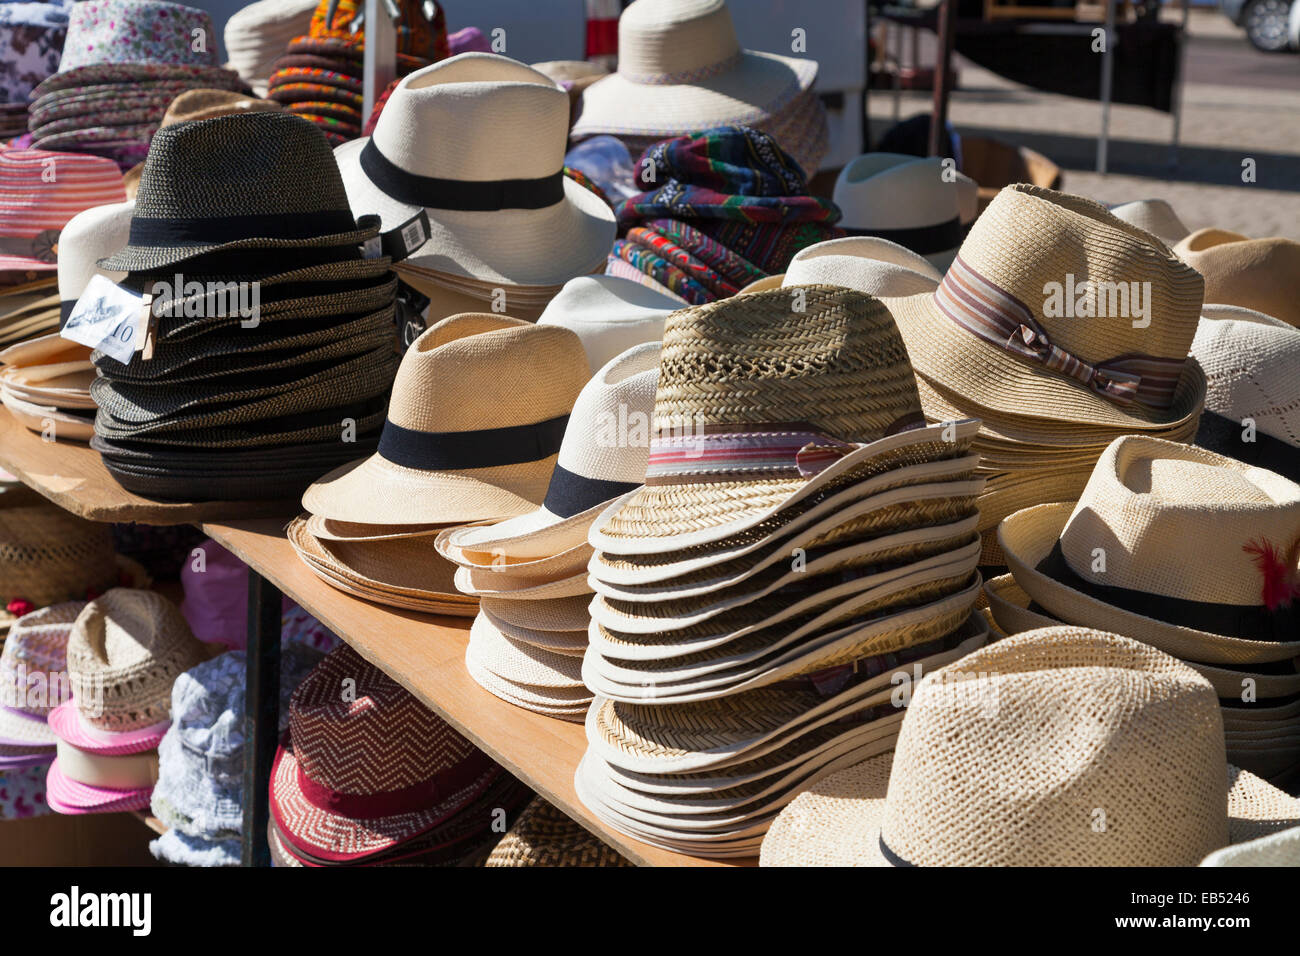 1bd6ab06626aba Stacks of mens summer hats for sale on market stall Stock Photo ...